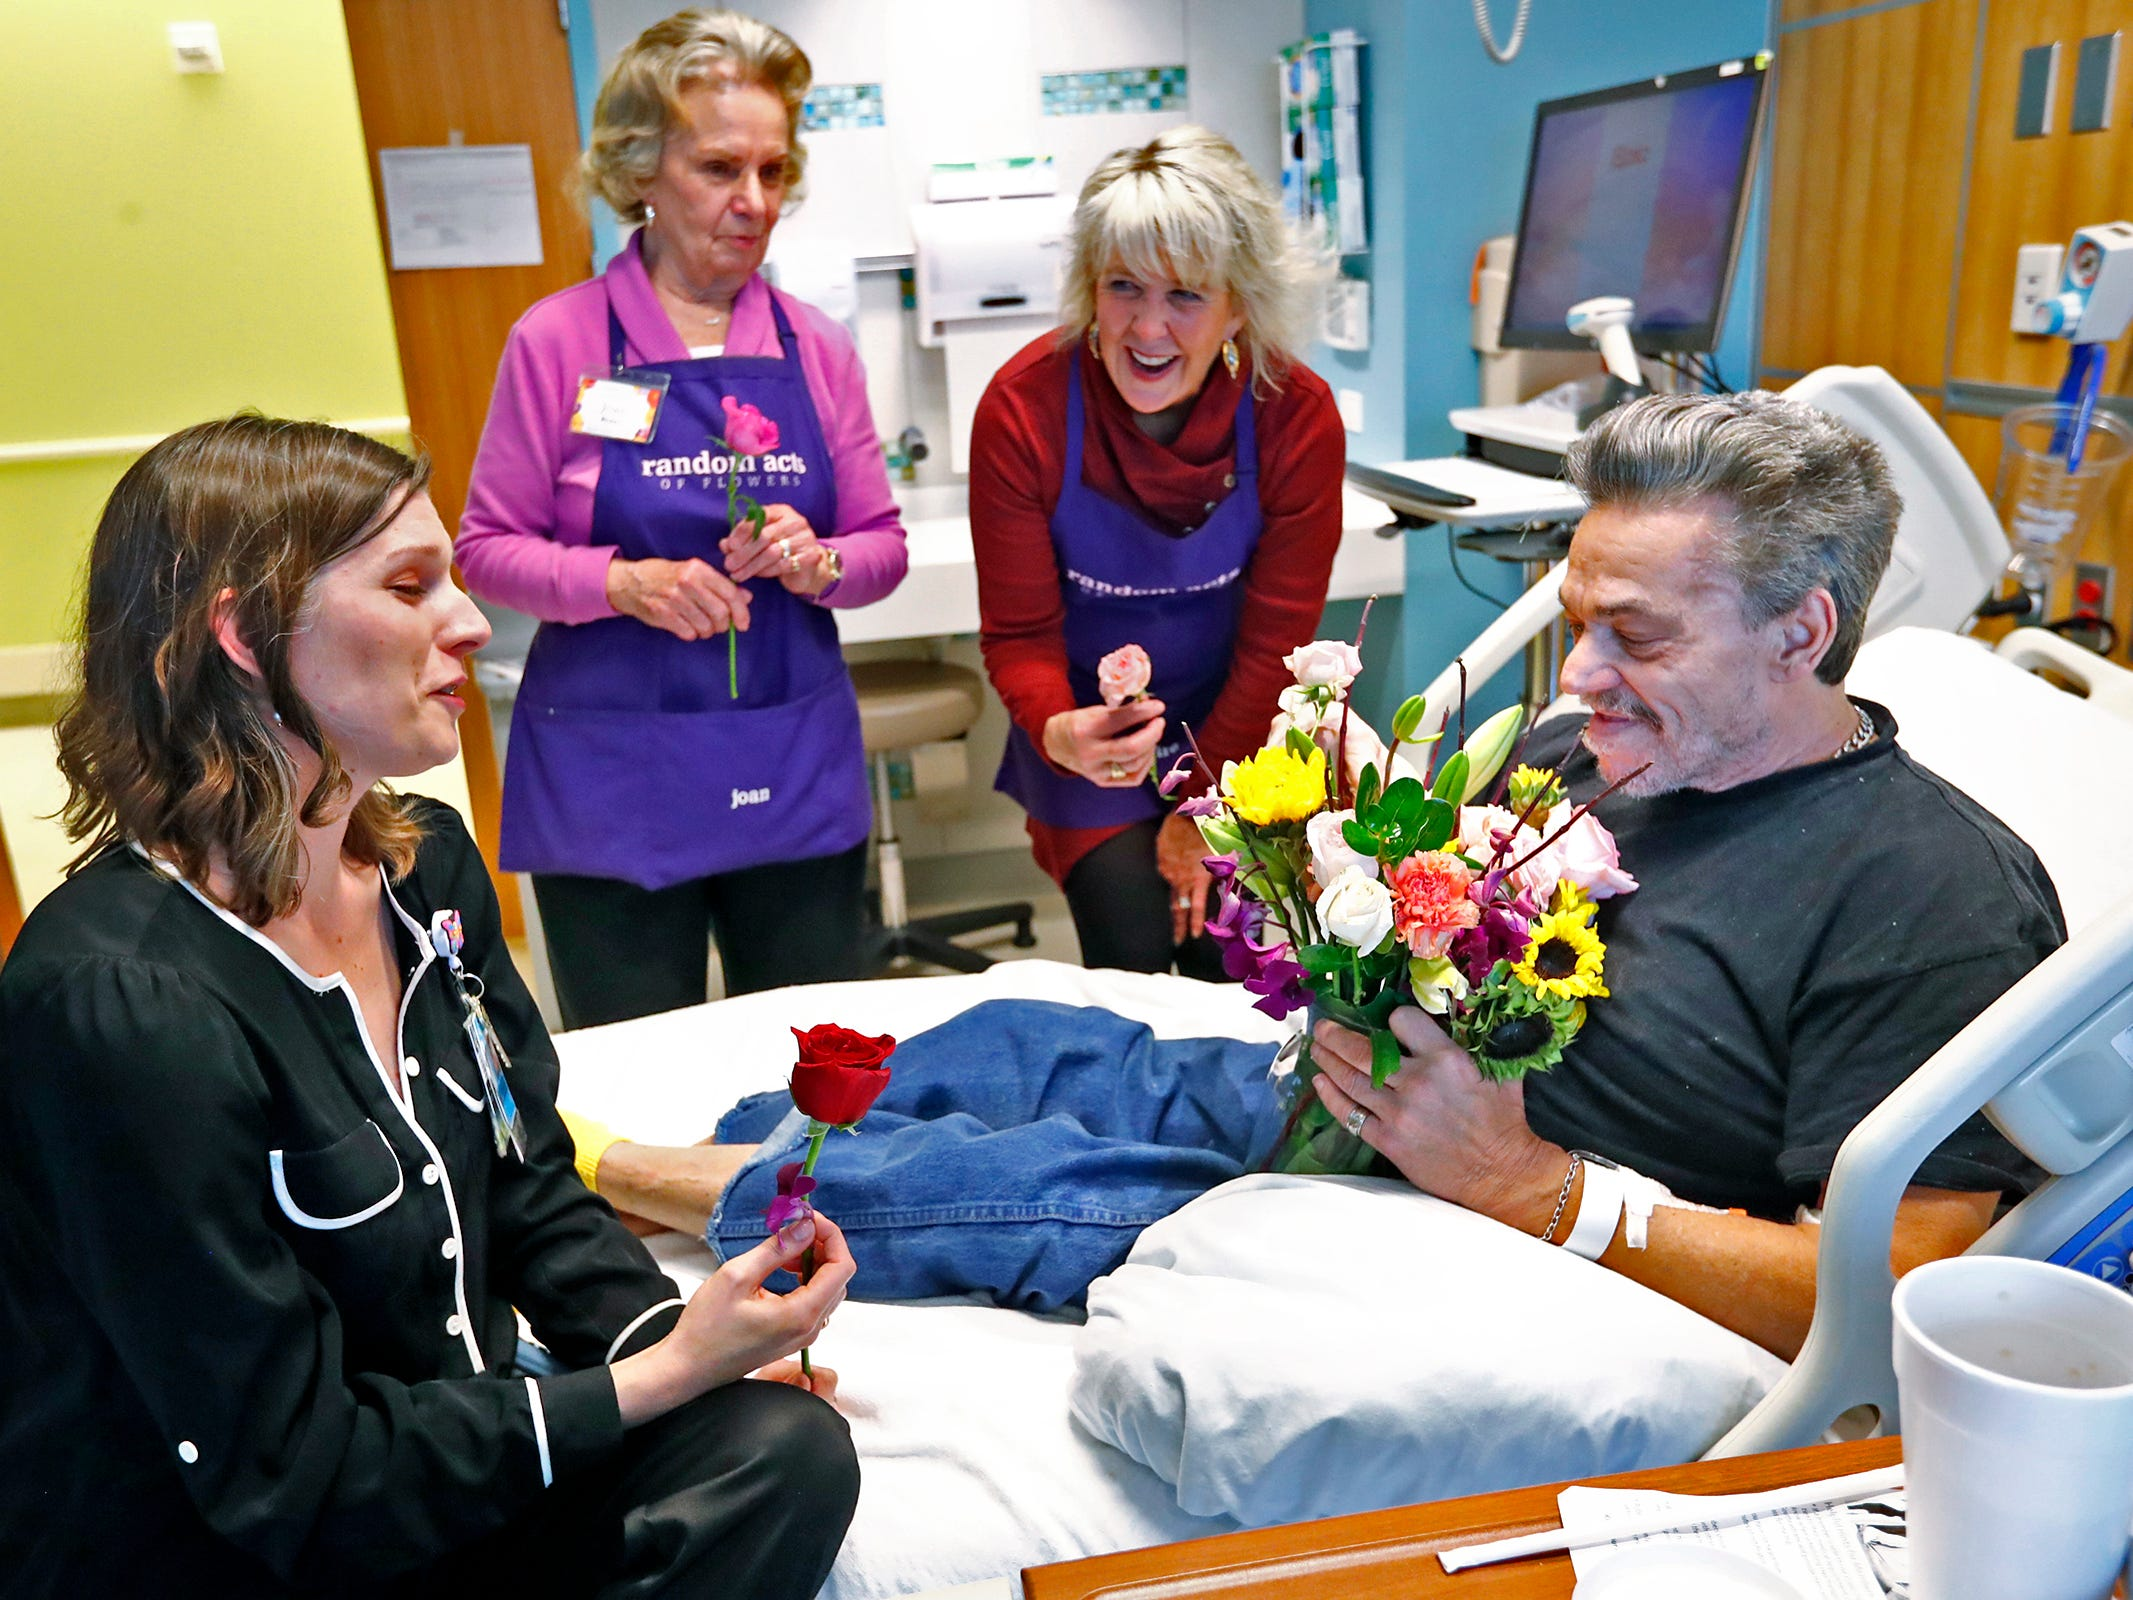 Natalie George Dykstra, from left, with Eskenazi's Office of Patient Experience, joins Joan Perry, and Claire Alexander, with Random Acts of Flowers, to deliver a bouquet of flowers to Robert Eastes, right, at Sidney & Lois Eskenazi Hospital, Thursday, Nov. 29, 2018.  The newest branch of the national floral nonprofit has been delivering the flowers to patients to offer hope, encouragement and smiles, for about two years.  Eastes also shared a flower with each of the women, and a woman photographer.